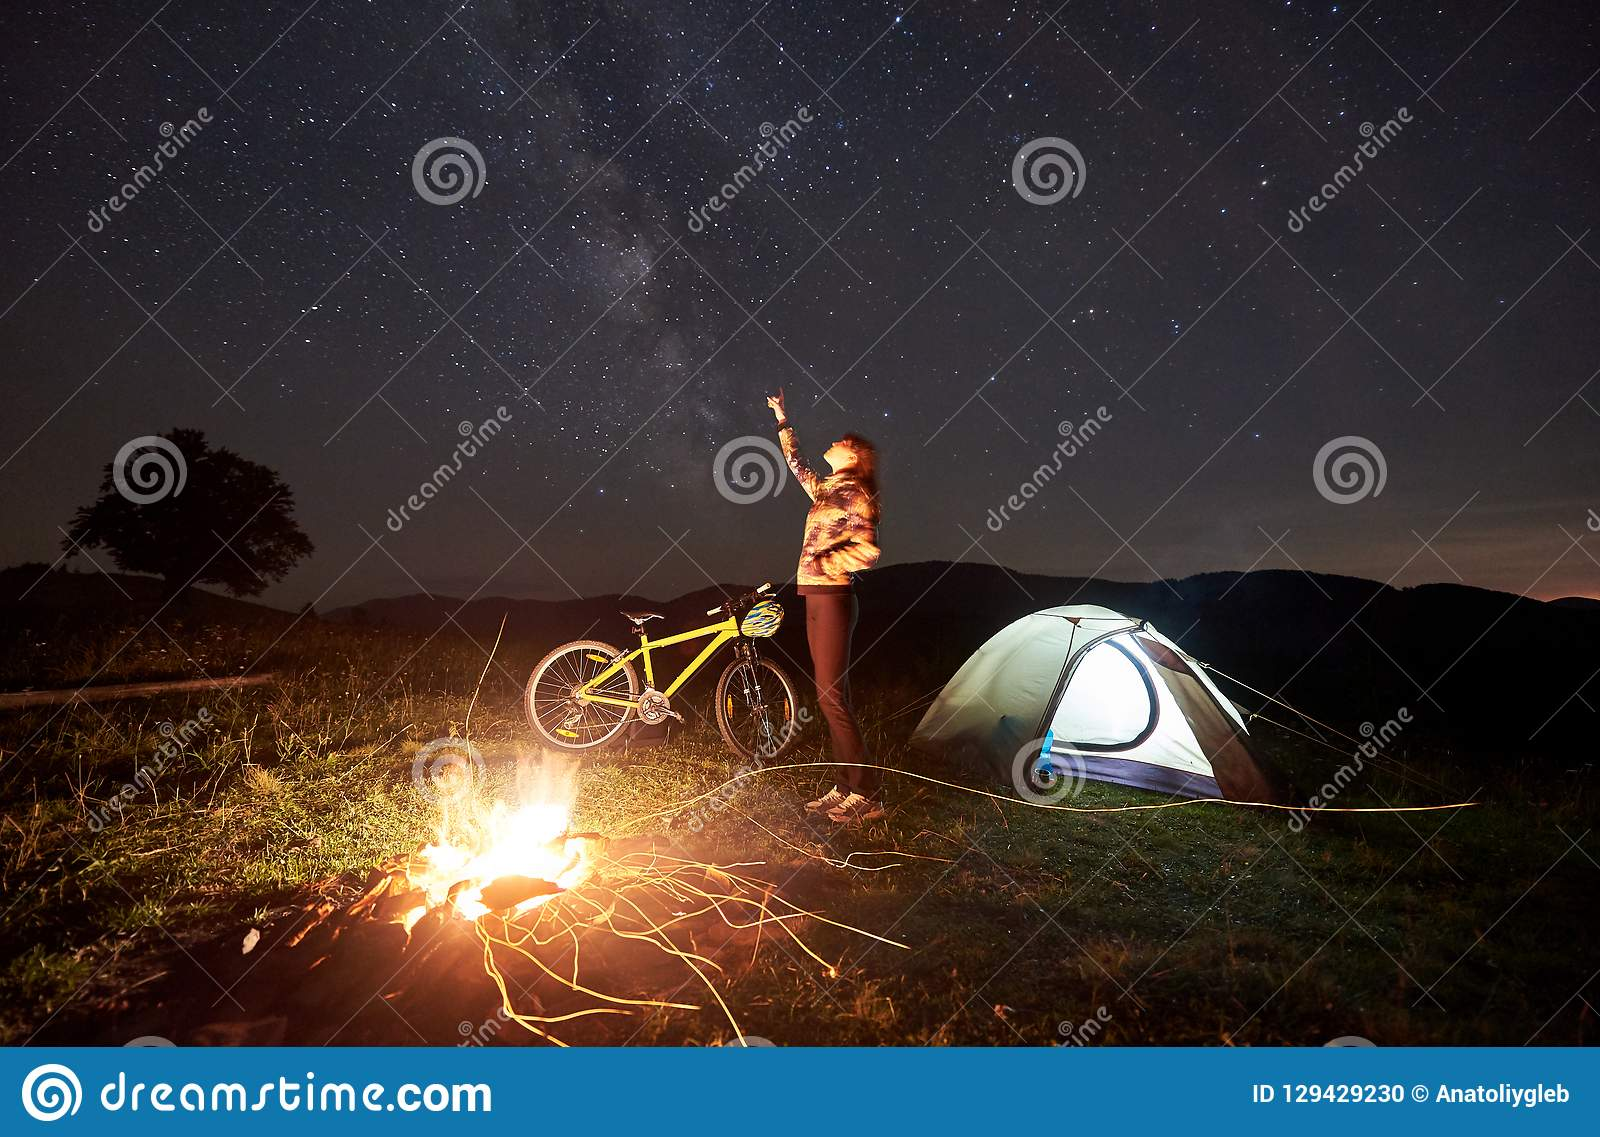 Woman resting at night camping near campfire, tourist tent, bicycle under evening sky full of stars